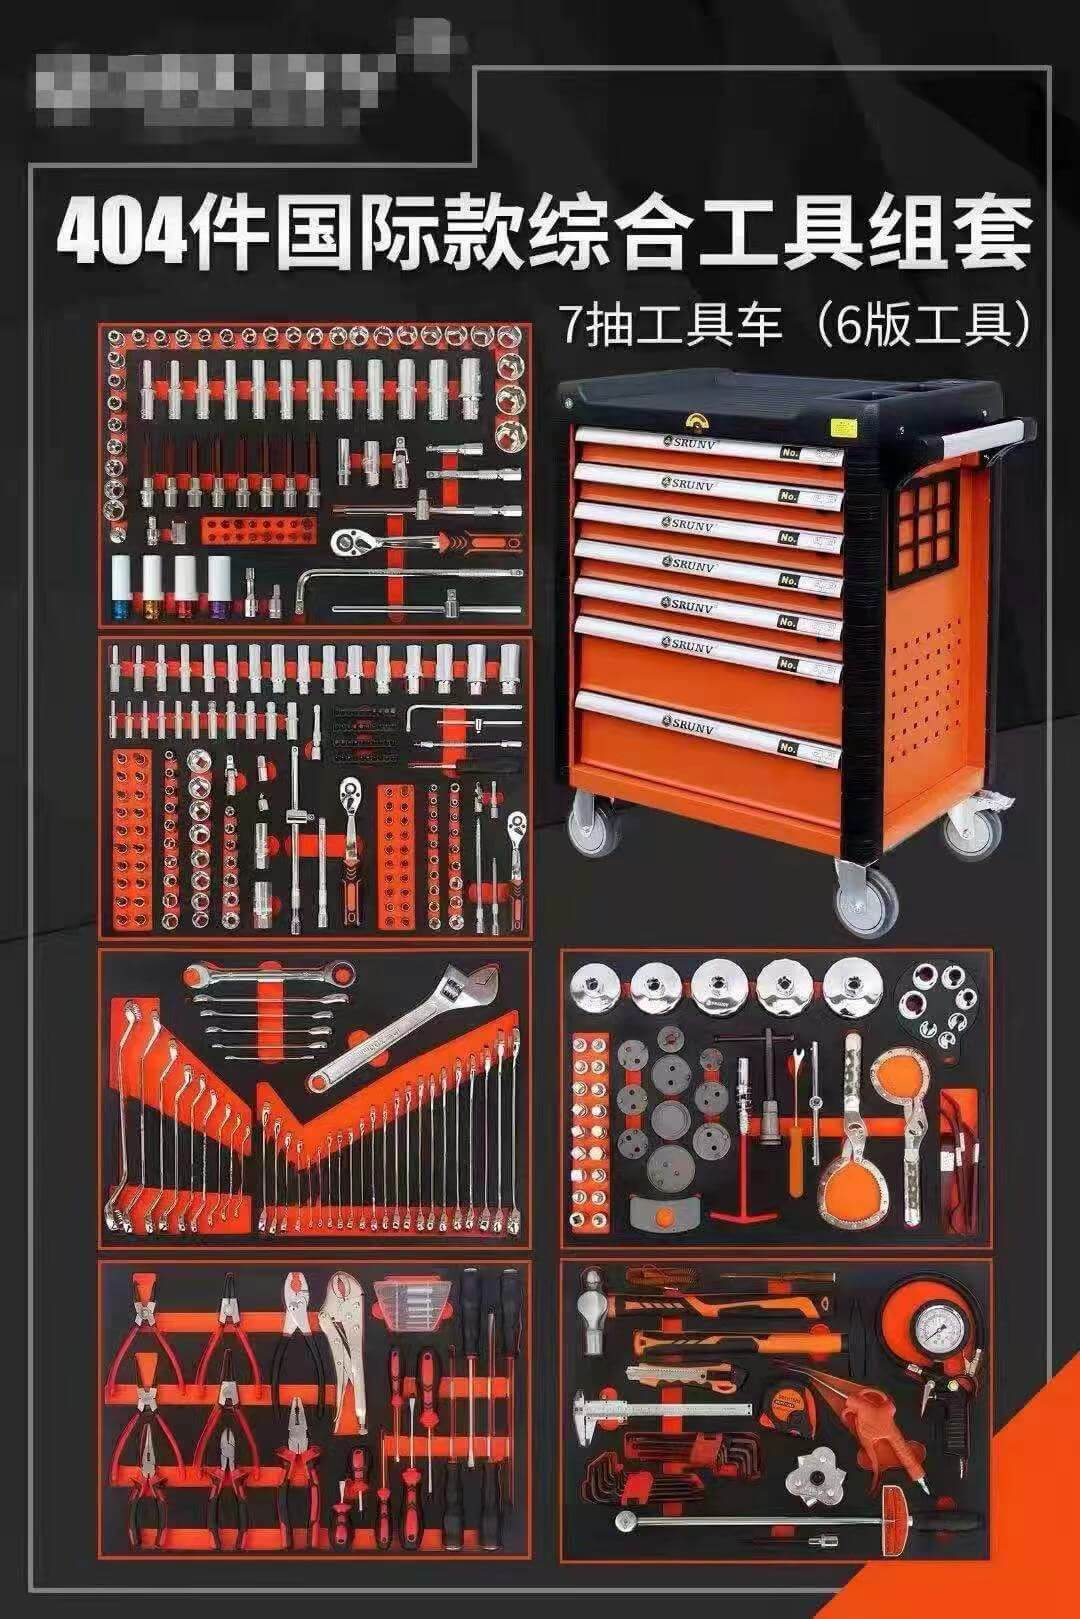 Xianxian Duojin Auto Protection Tools Co., Ltd Showcases Variety Of Superior Maintenance and Repair Tool For Repair And Manufacture of Autos And Parts